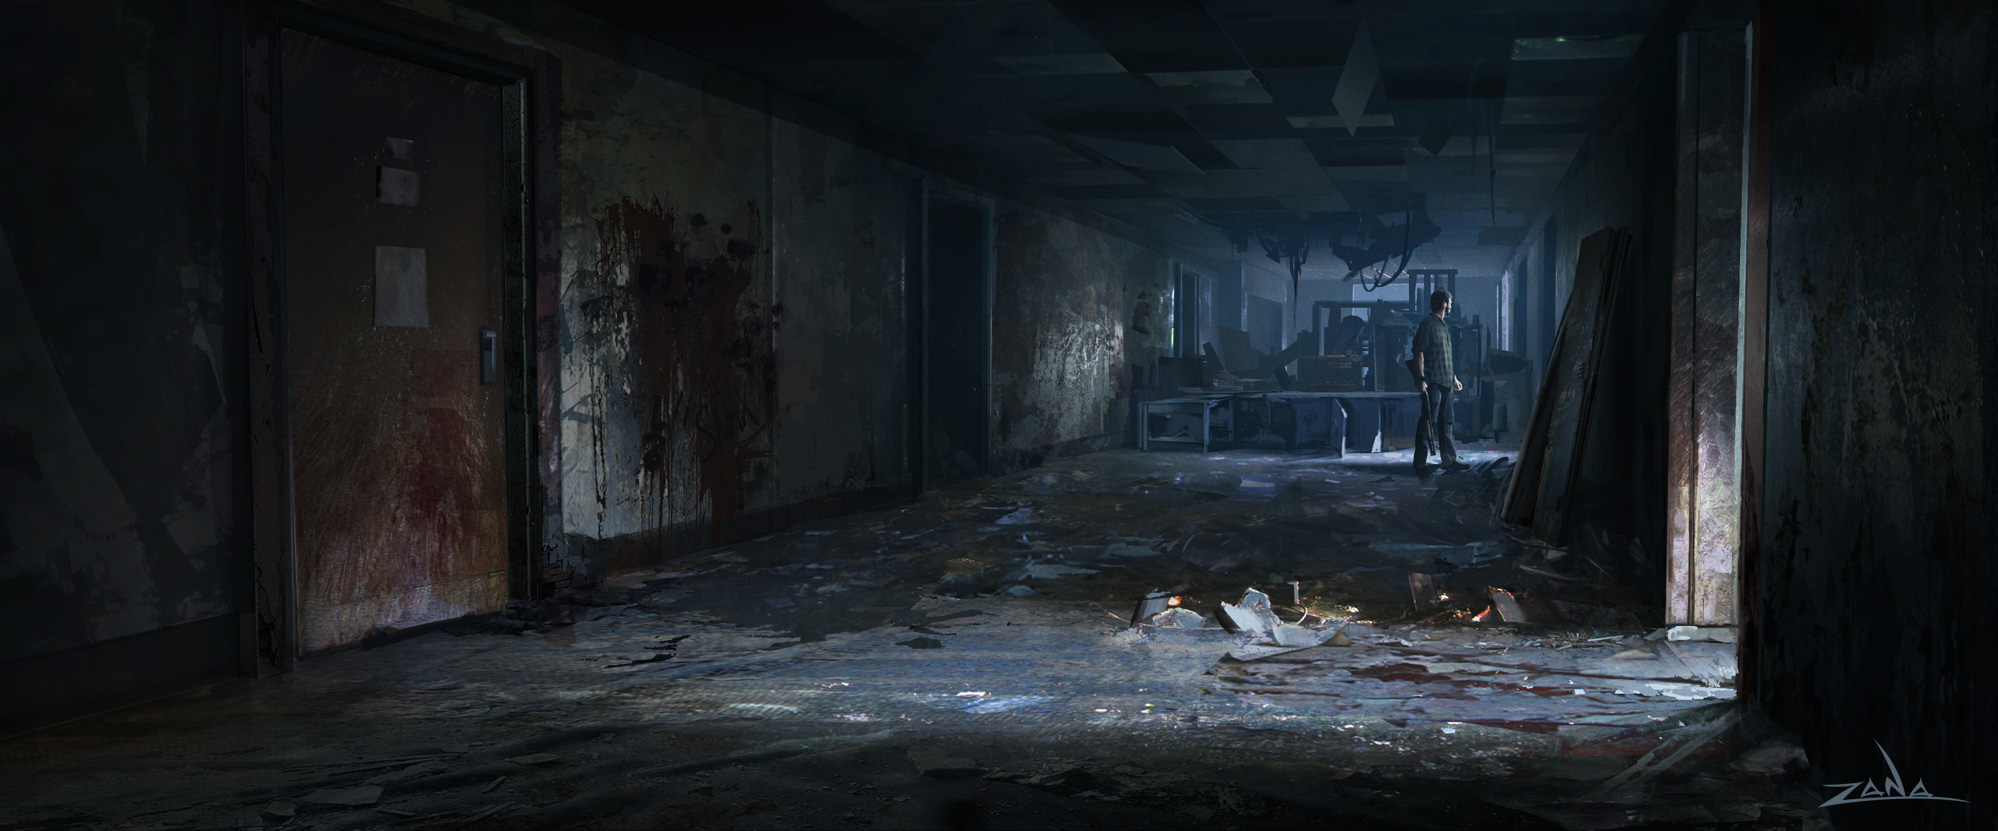 Zombie Apocalypse Wallpaper The Last of Us Concept...